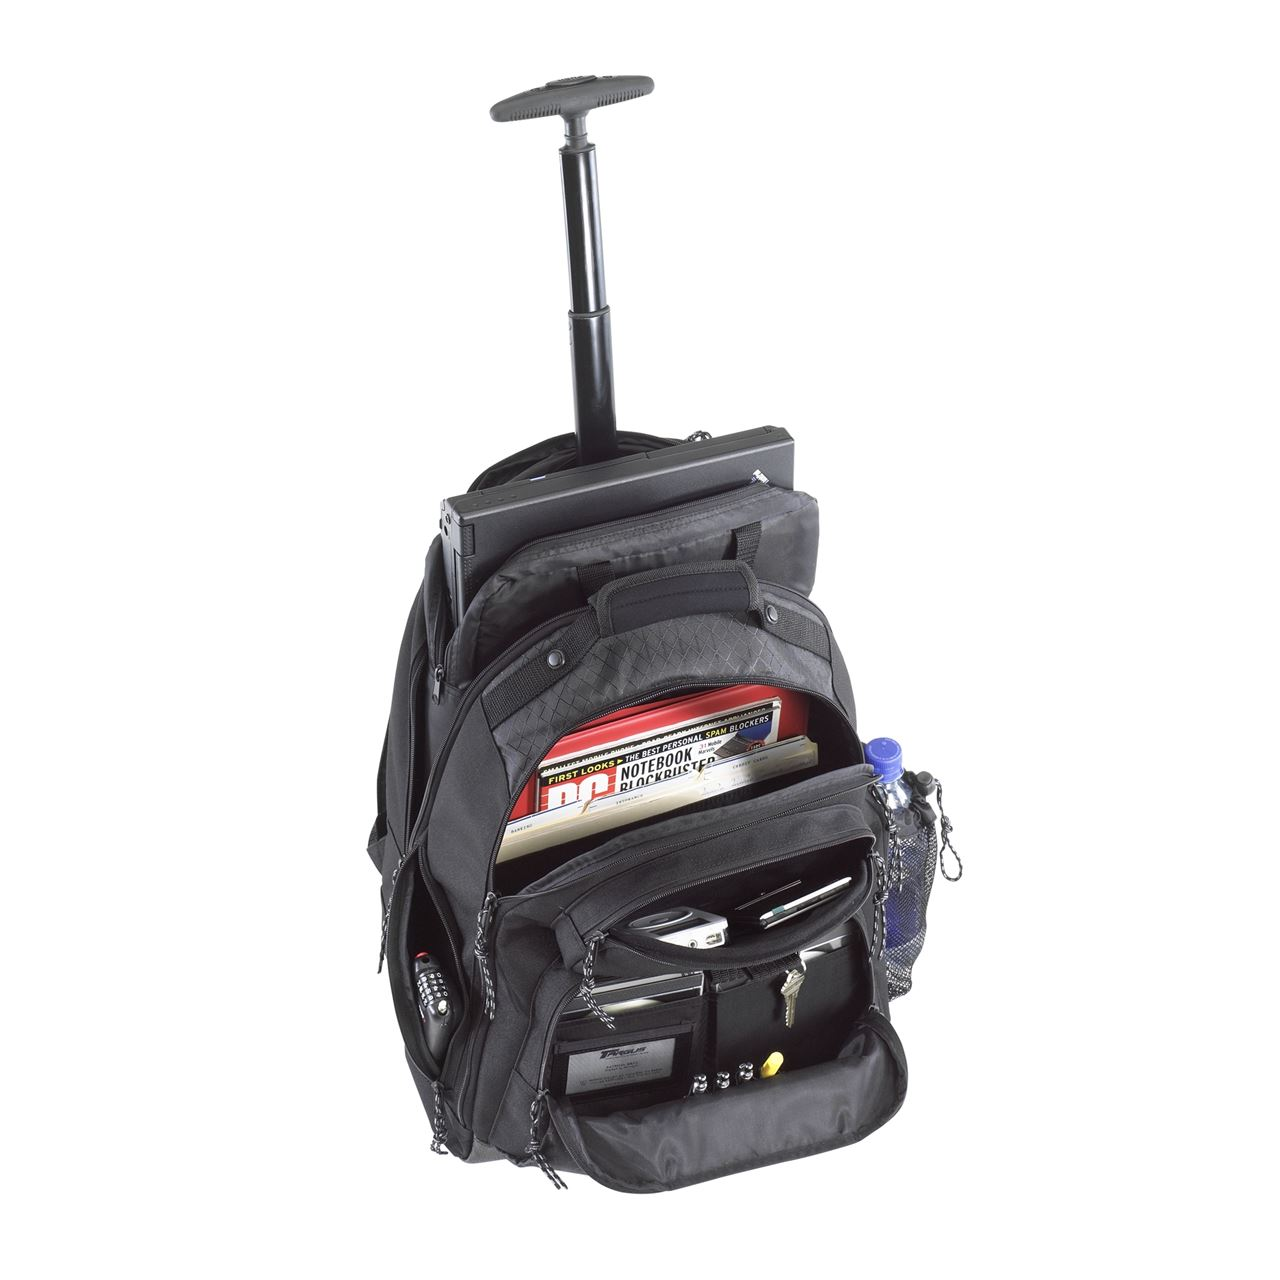 Home discontinued products laptop bags 15 4 rolling laptop